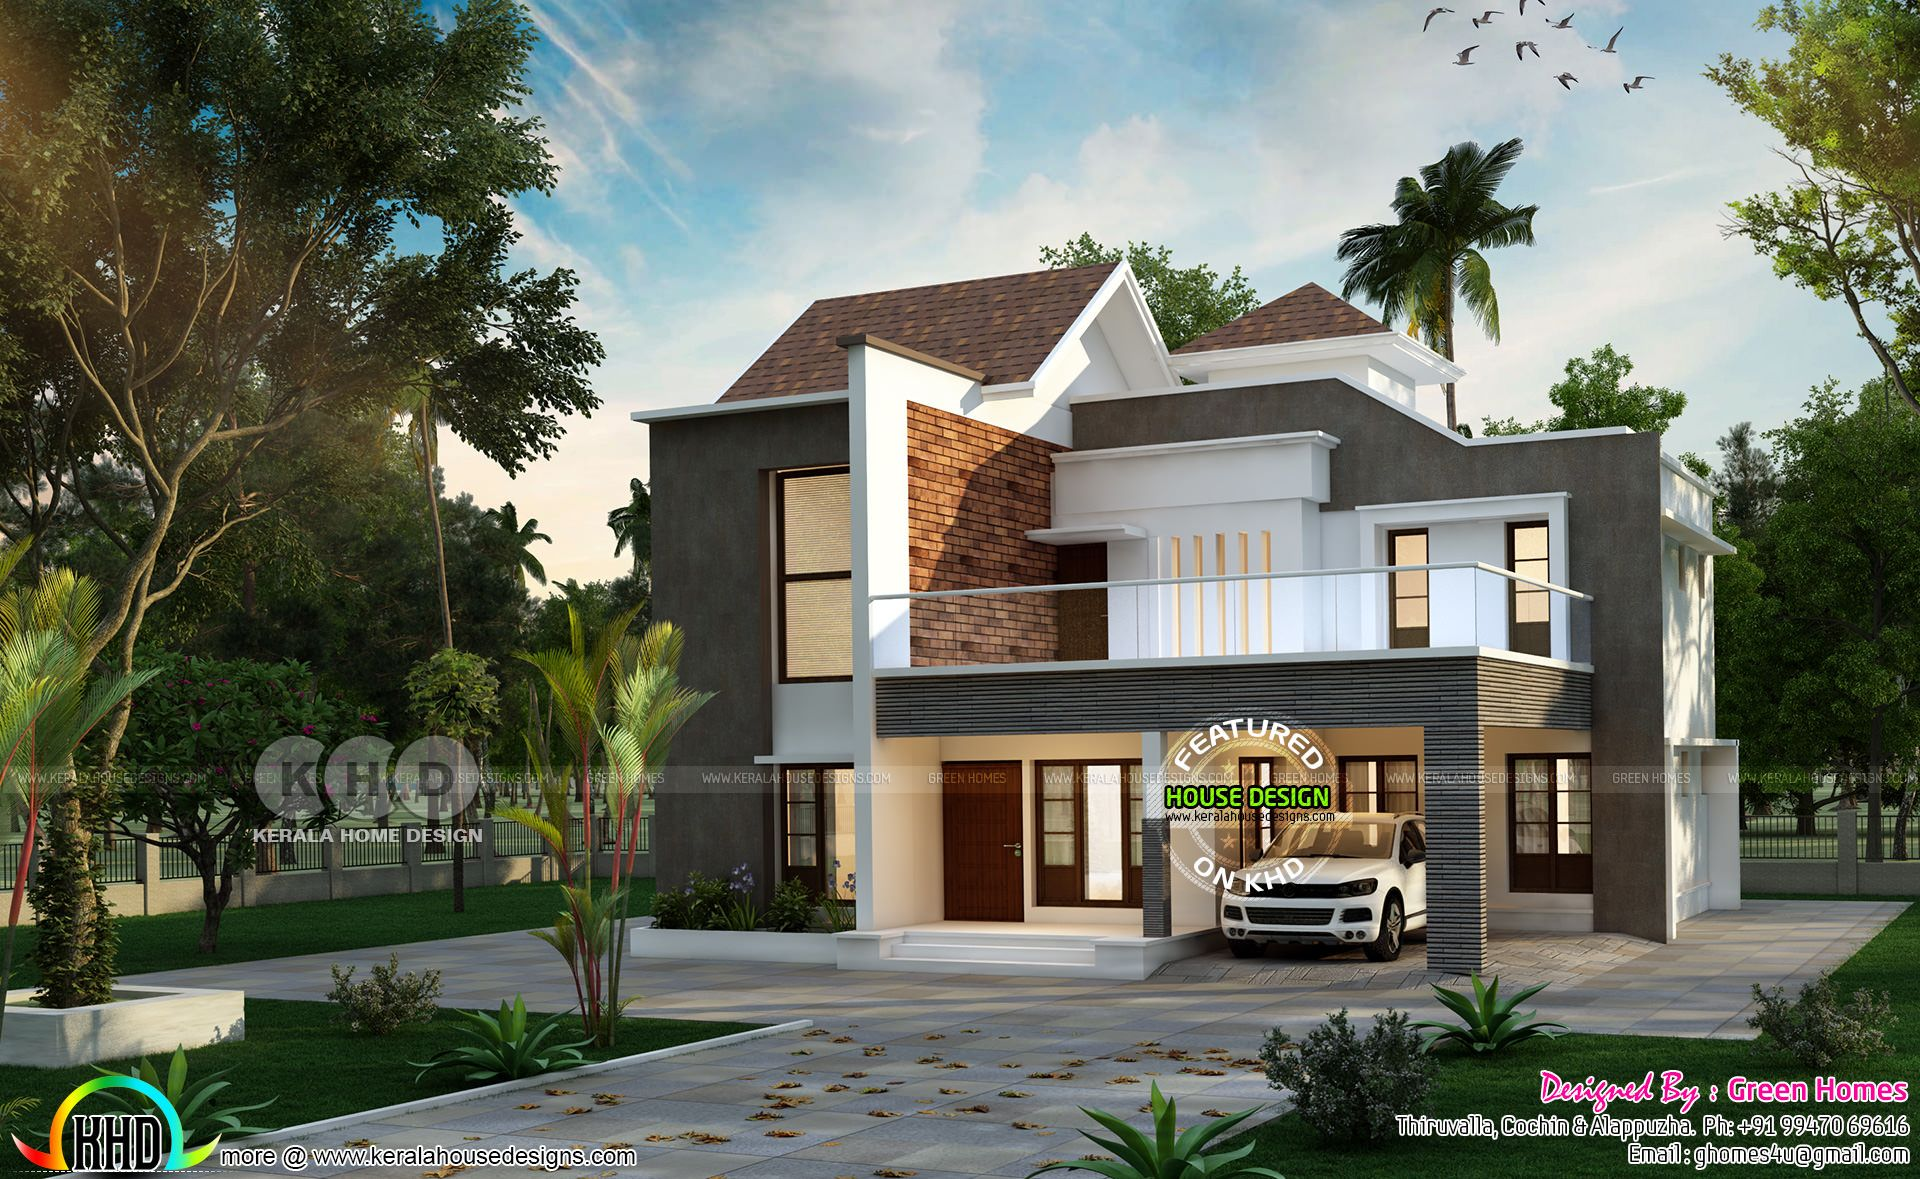 Year 2019 House Design Starts Here House Design House Smart